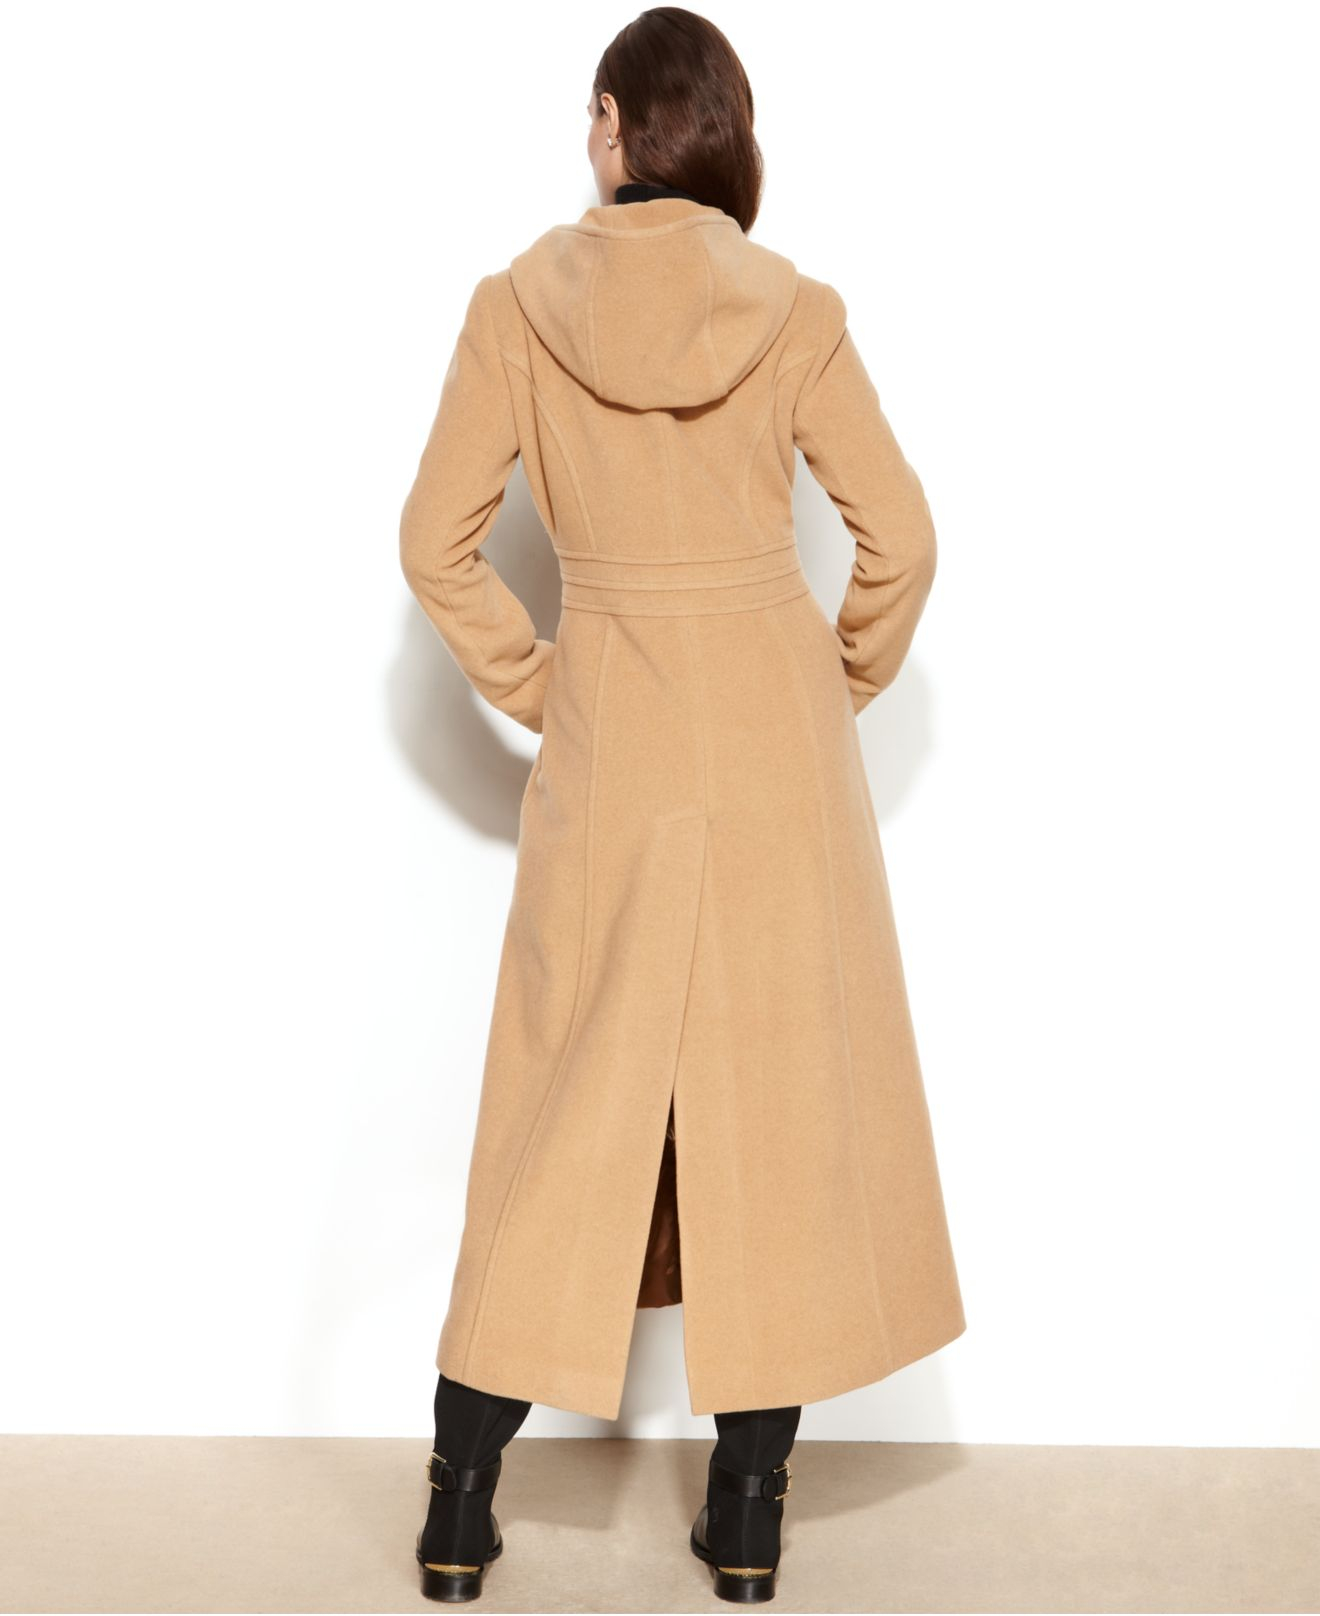 Anne klein Double-Breasted Wool-Blend Hooded Maxi Coat in Natural